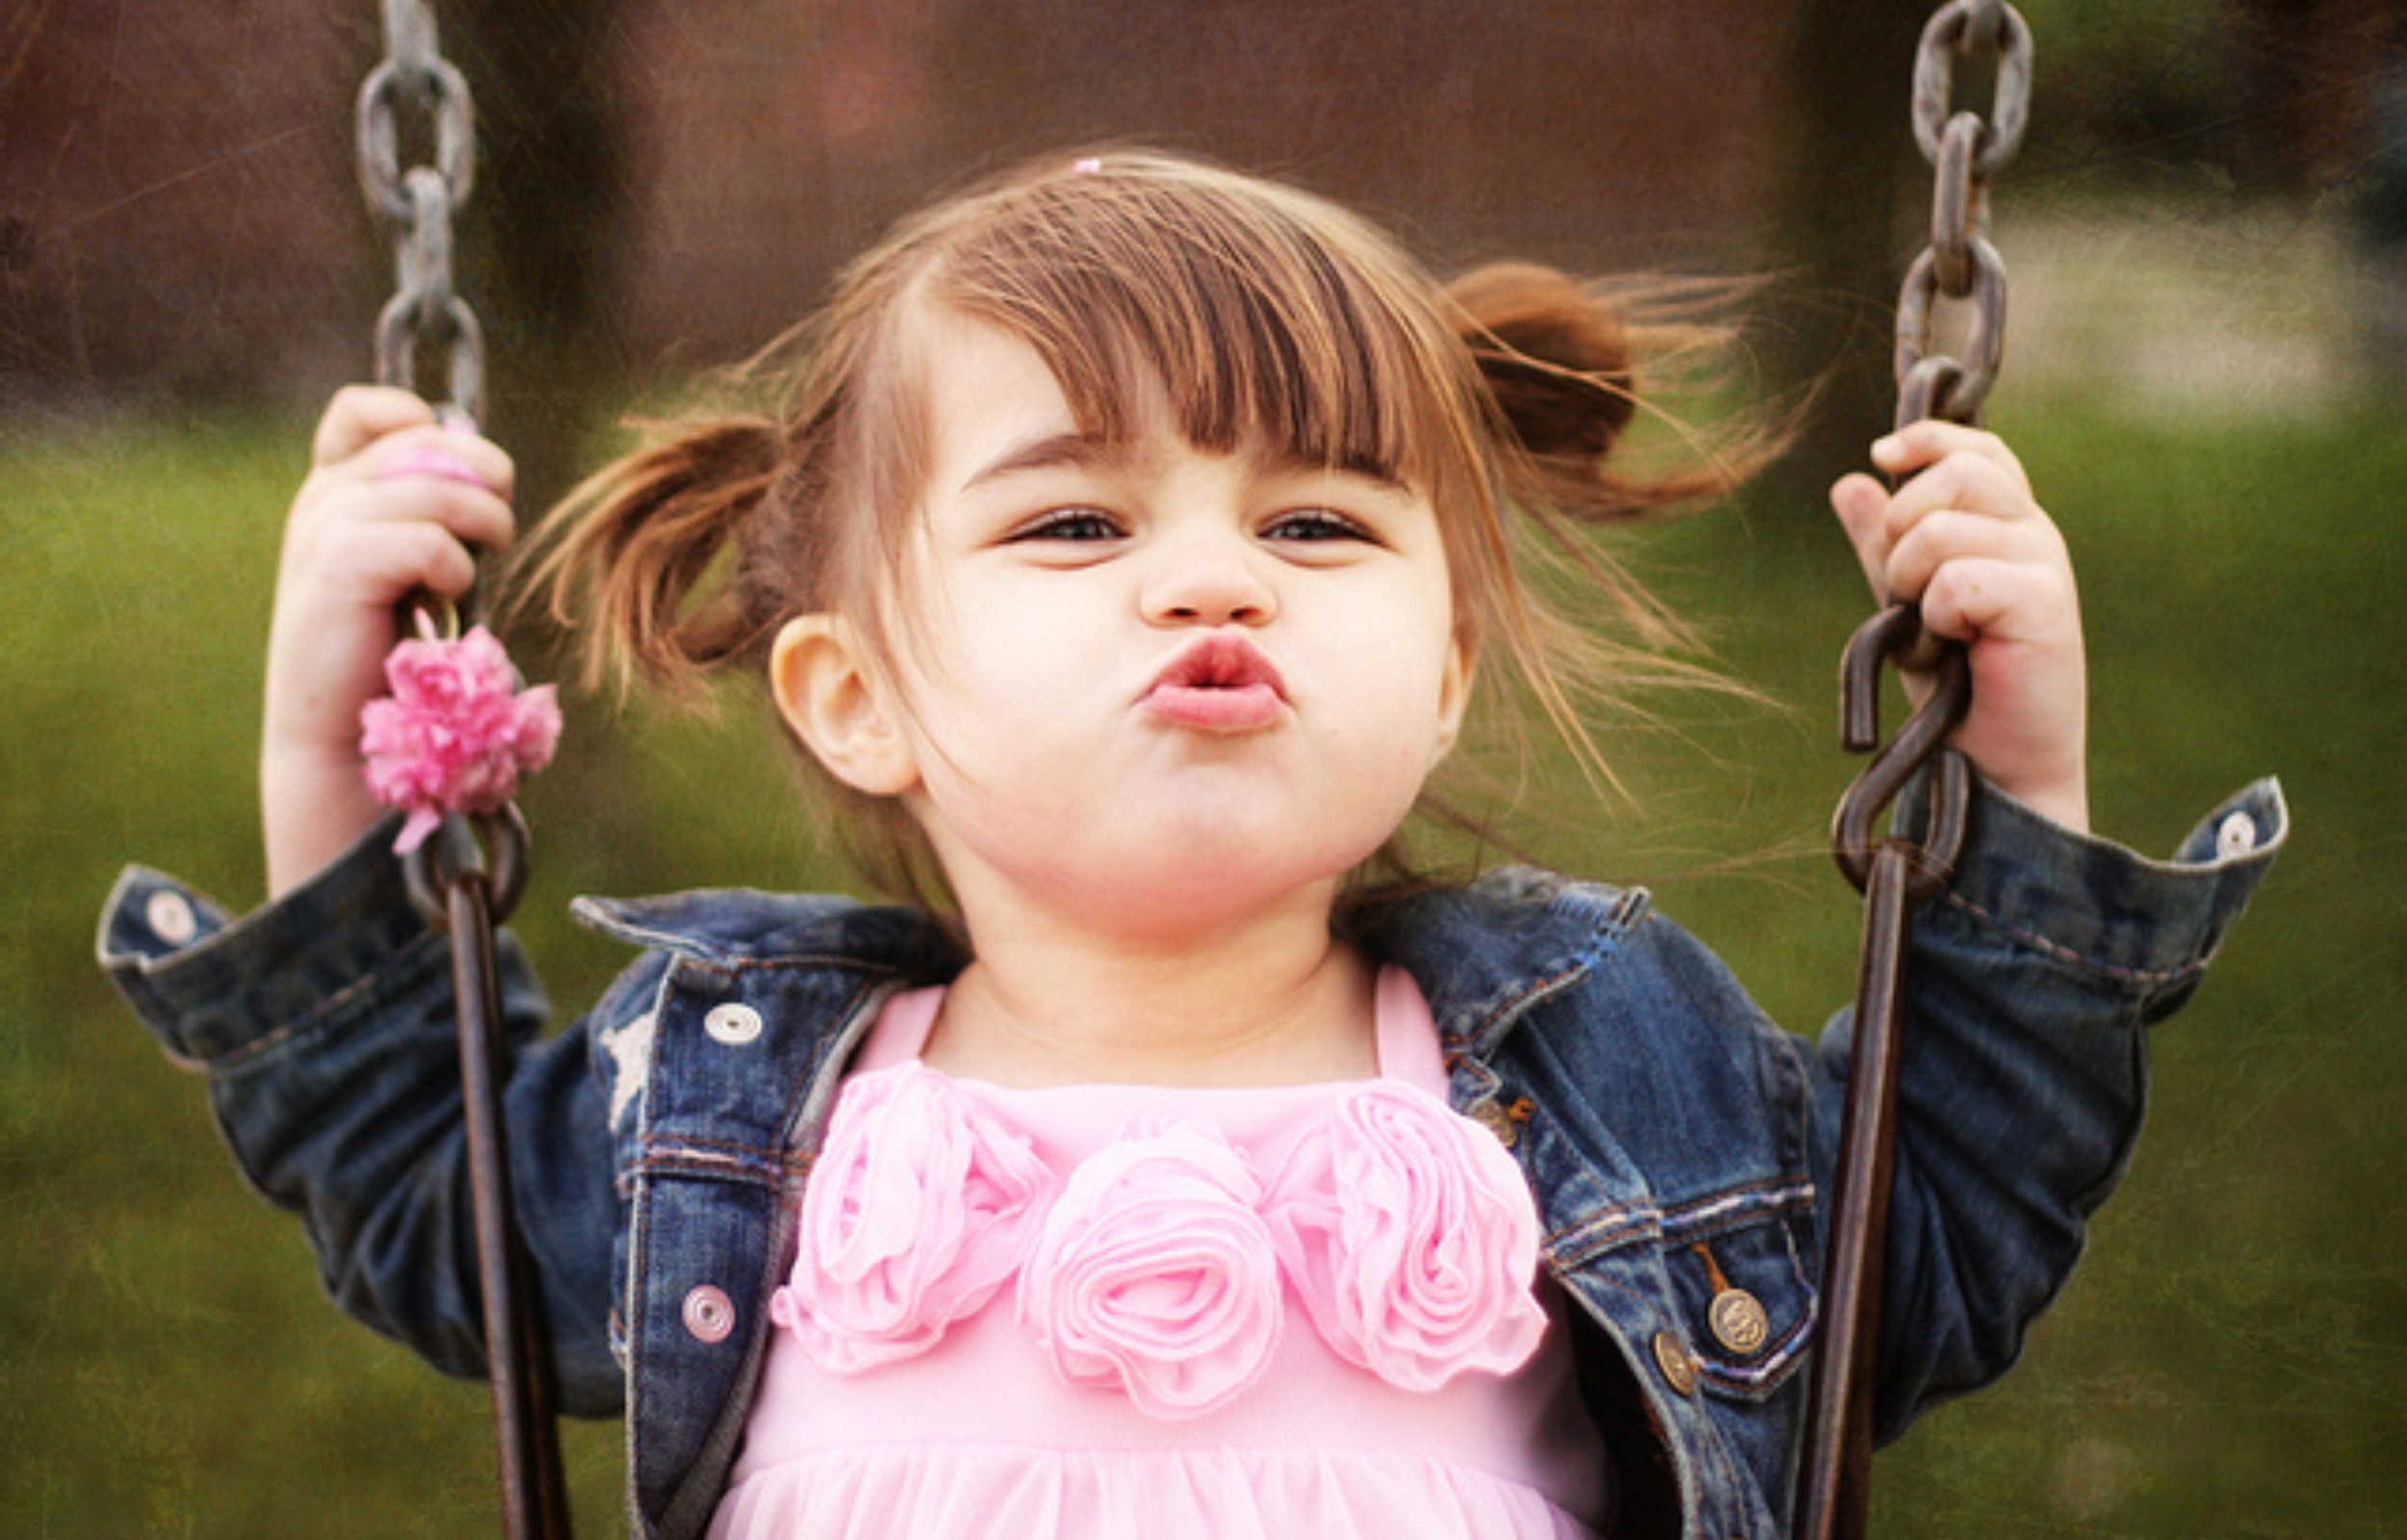 Download Free Small Cute Babies Wallpapers The Quotes Land: Cute Baby Girl Wallpaper